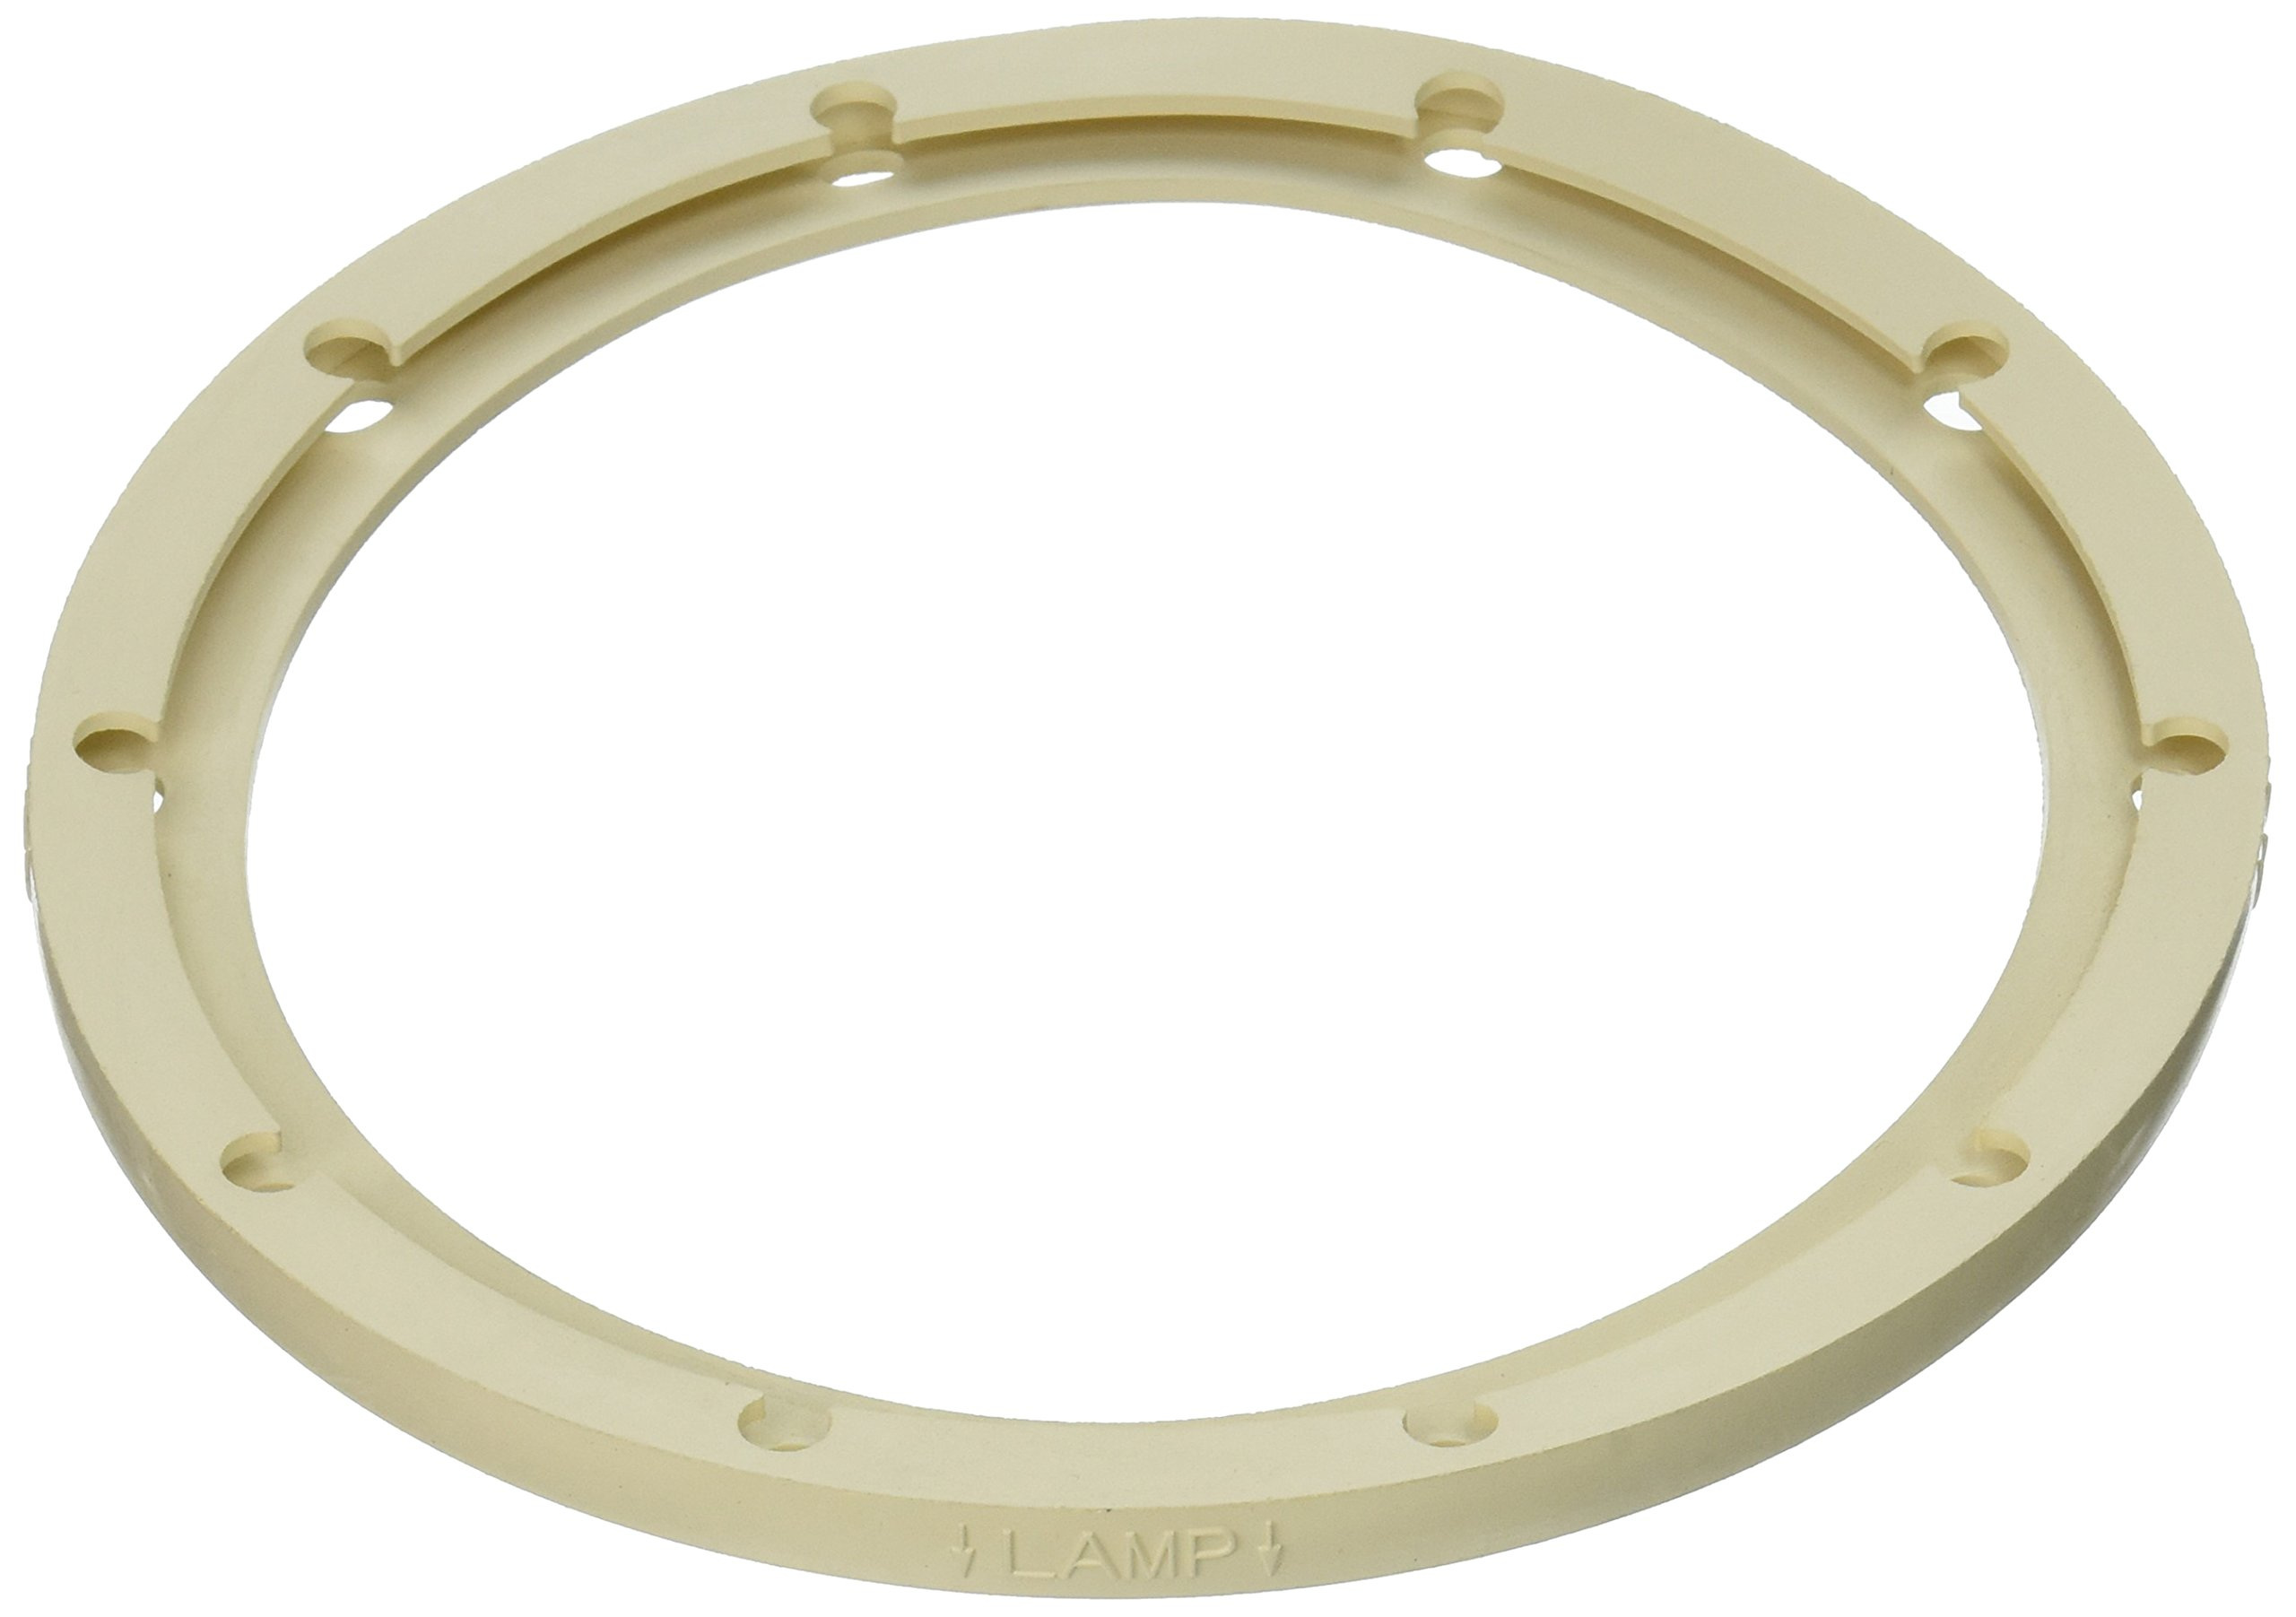 PENTAIR WATER POOL AND SPA 05057-0118 Gasket for Light Housing Lens